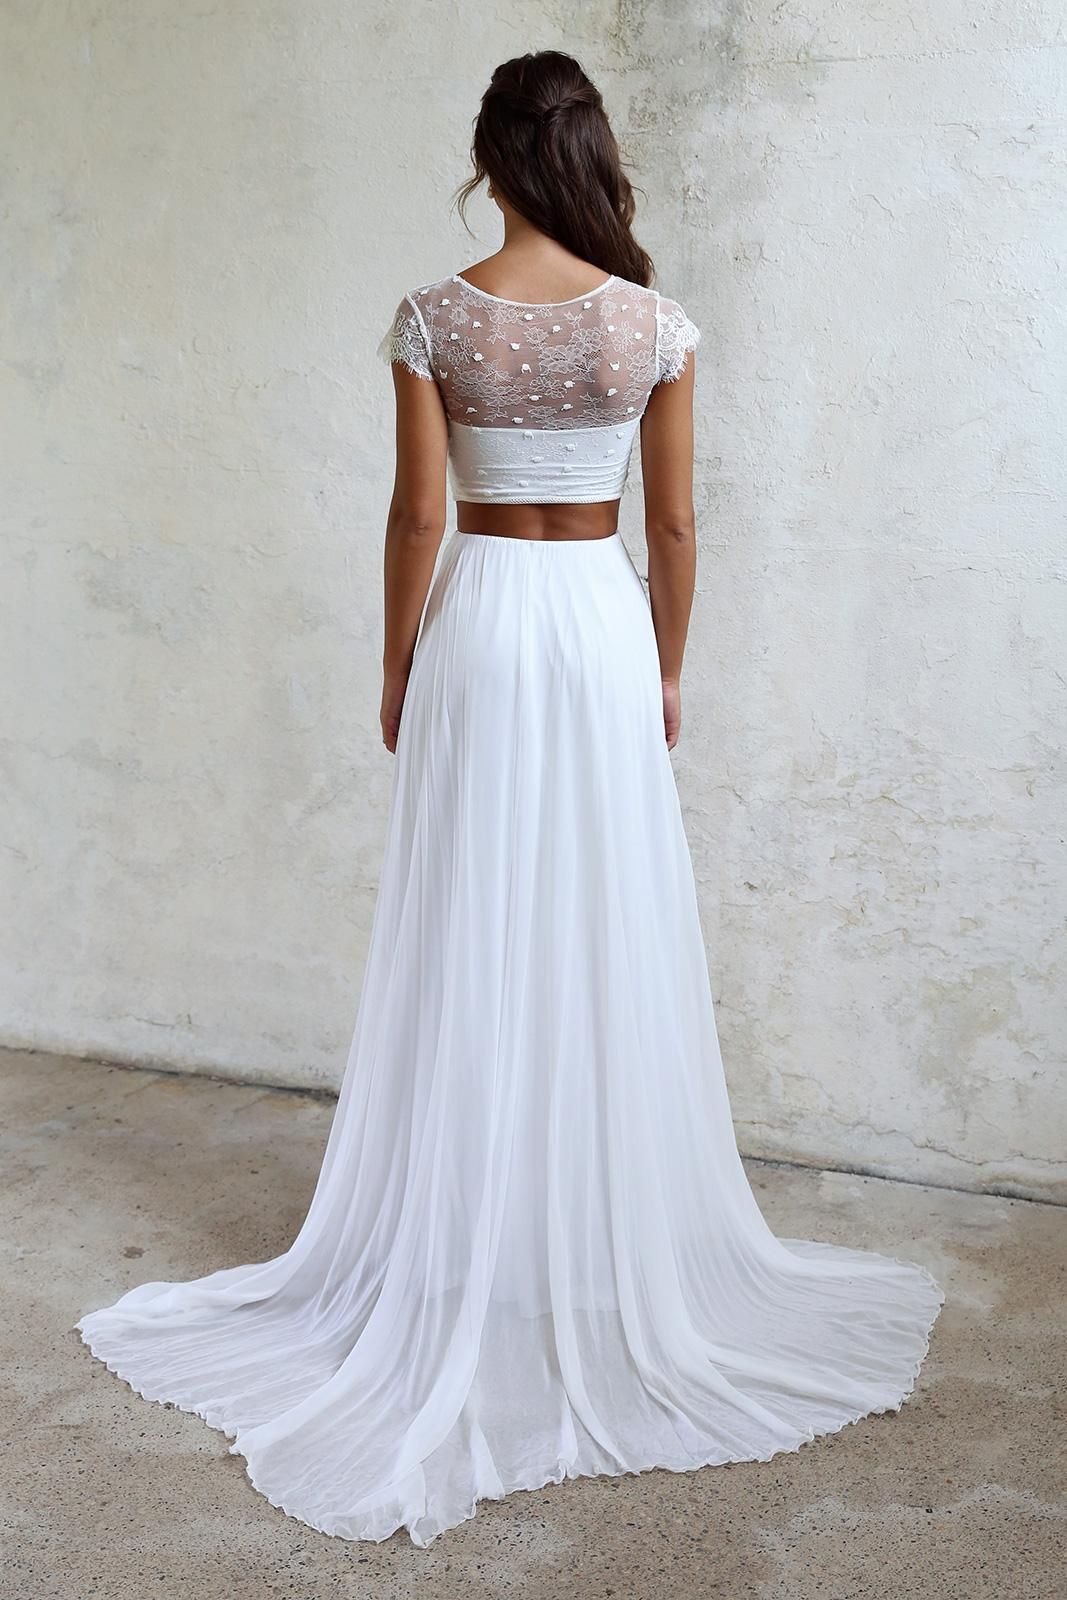 Shop Yeo in 2020 Two piece wedding dress, Sophisticated